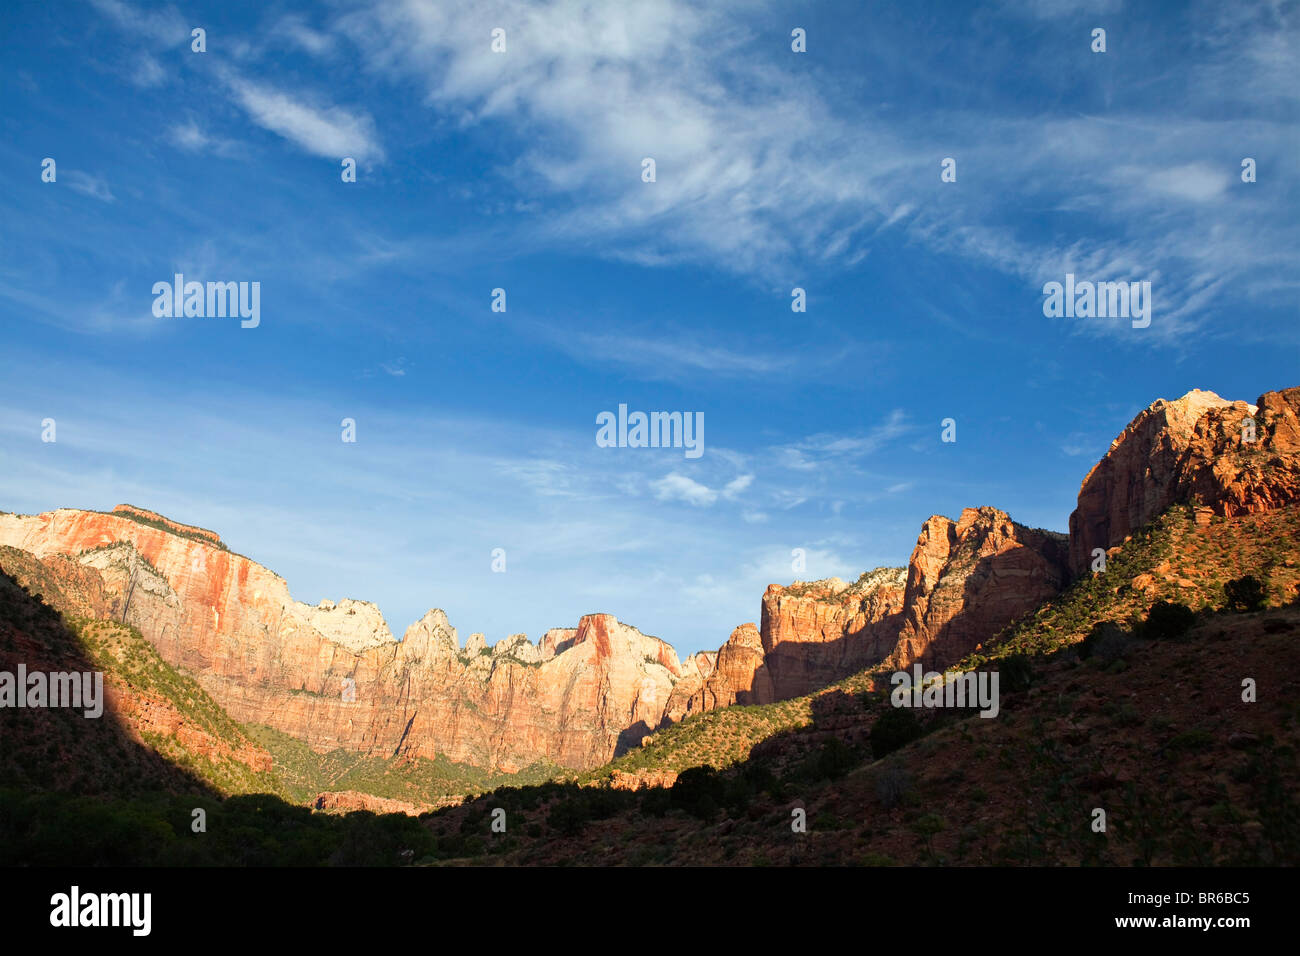 Early morning light and wispy clouds in Zion Canyon National Park. - Stock Image